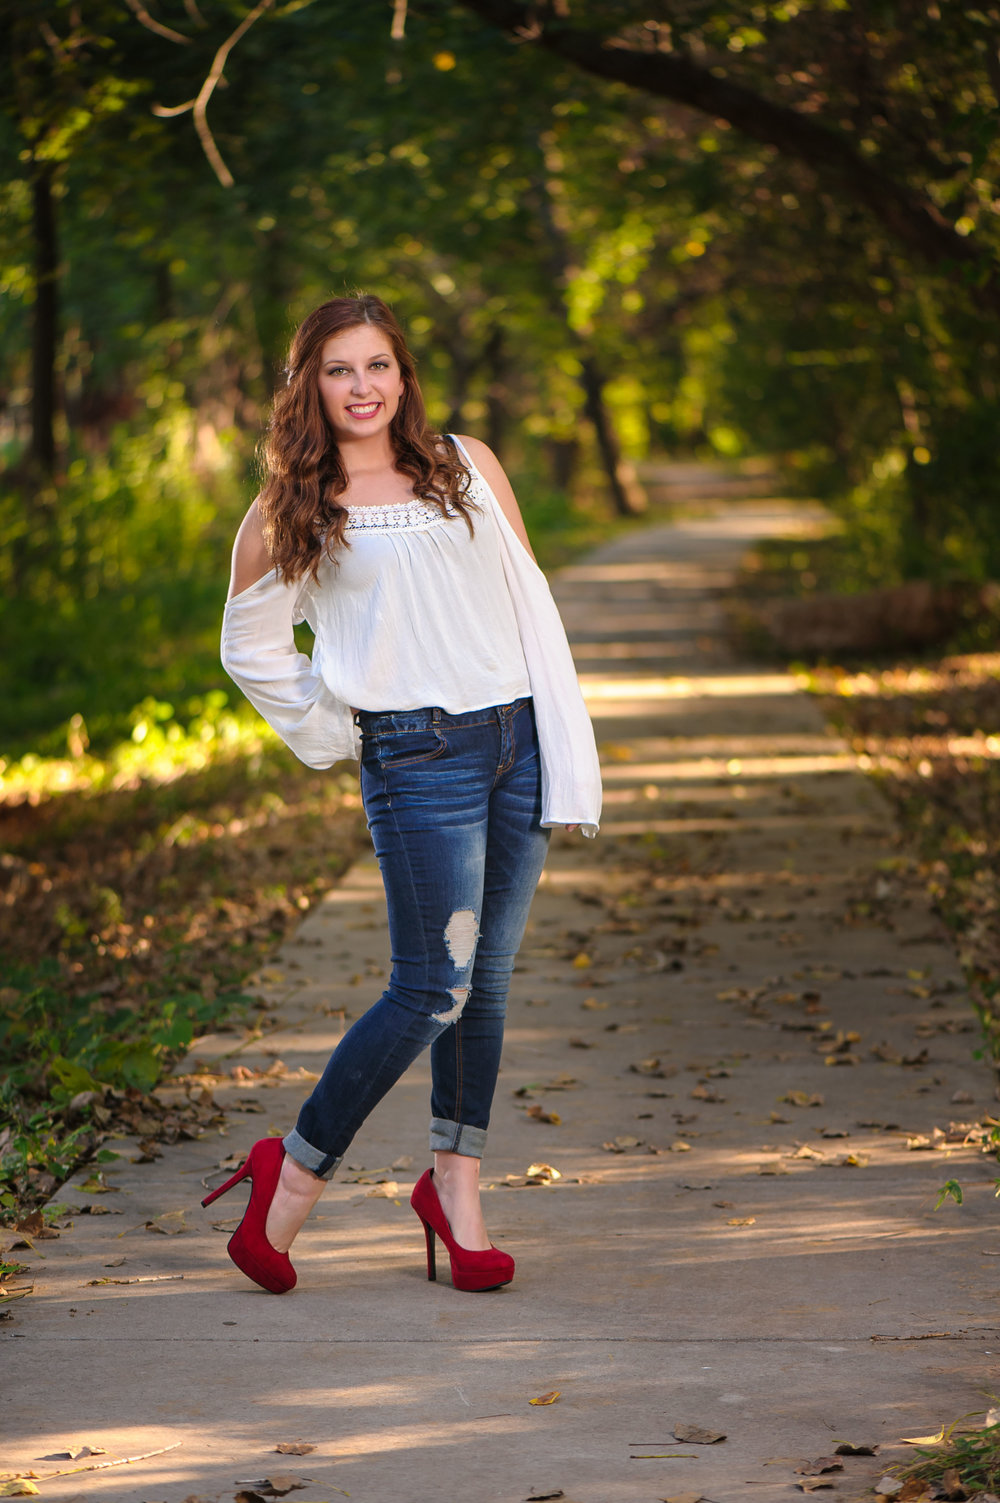 0004-oklahoma-high-school-senior-photographer-best-fun-fabulous.jpg